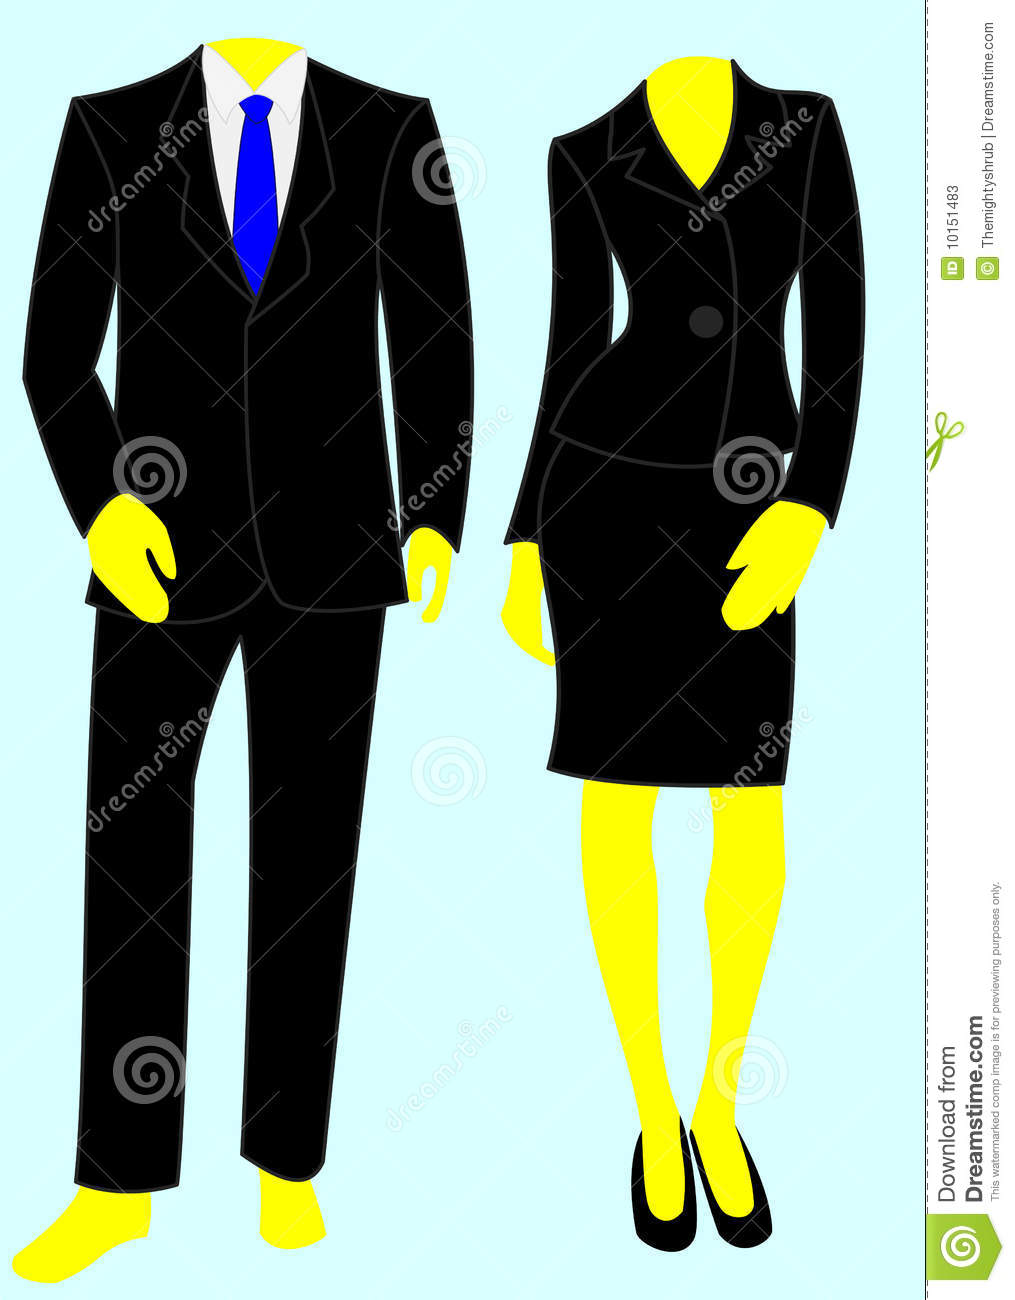 Man In Suit And Tie Clipart Two Smart Business Suits